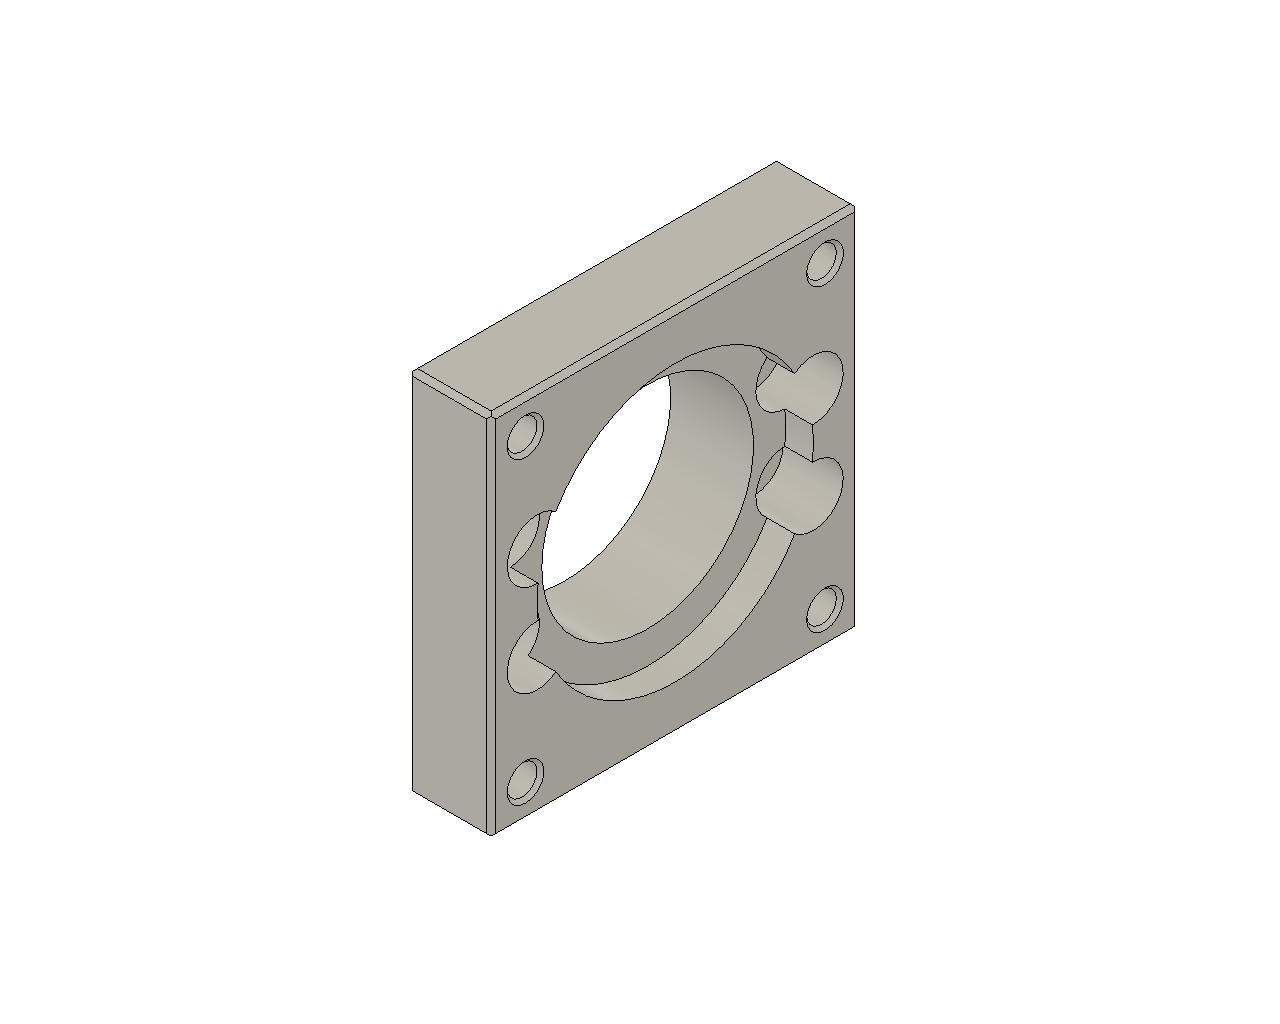 IKO - Motor Bracket for Precision Positioning Table TE-B